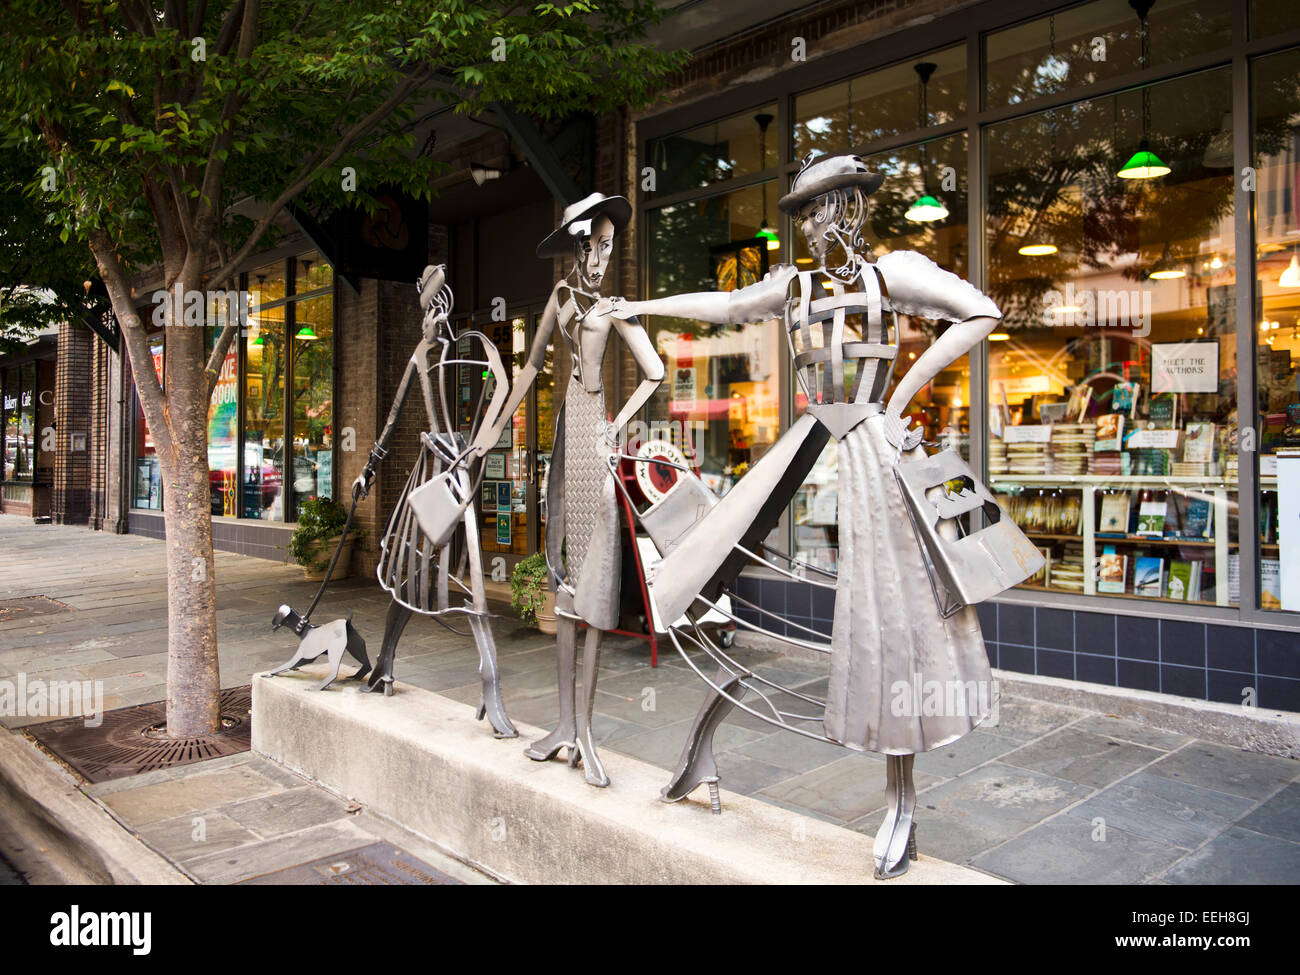 One of many public artworks in downtown Asheville NC - Stock Image